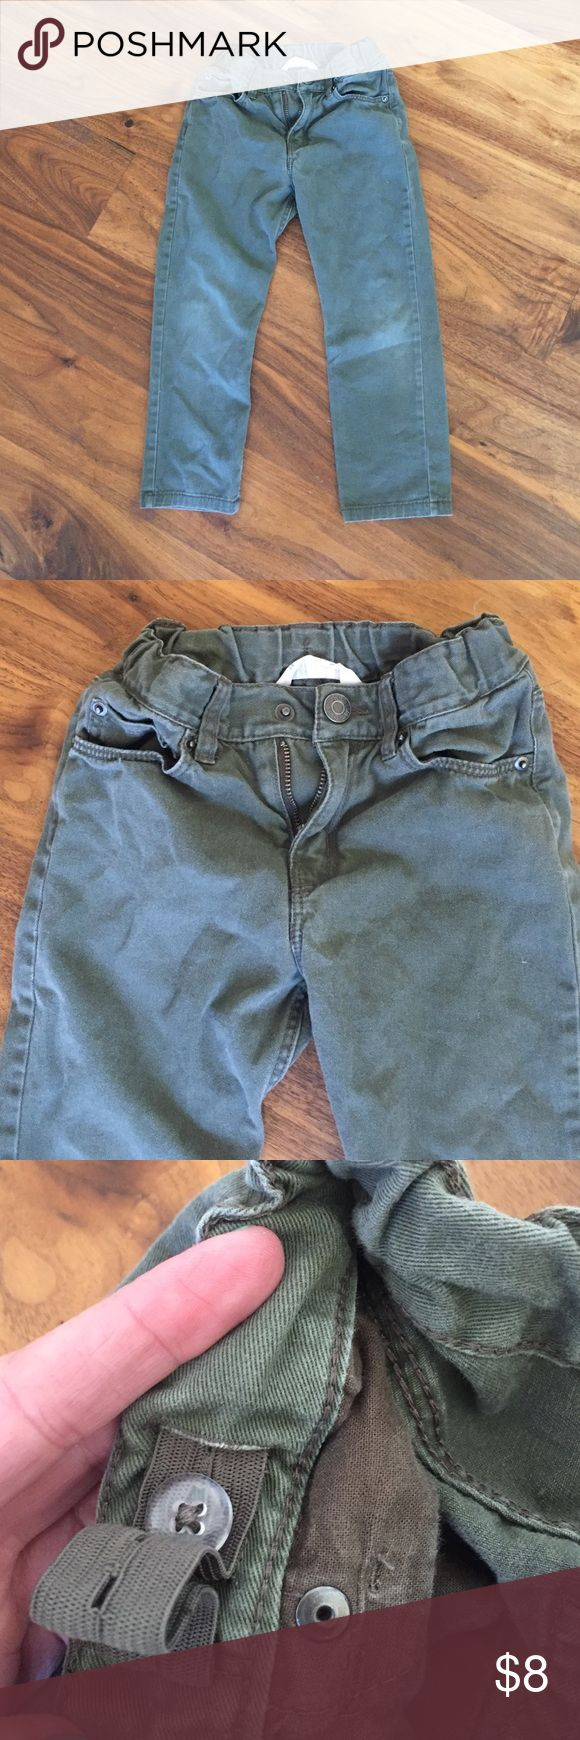 Boys H&M skinny jeans Good condition. There is tiny bit of added wear on the knees but was already some when bought which was style of the pants. Super cute fit. Adjustable waist. These are an olive/khaki color. H&M Bottoms Jeans